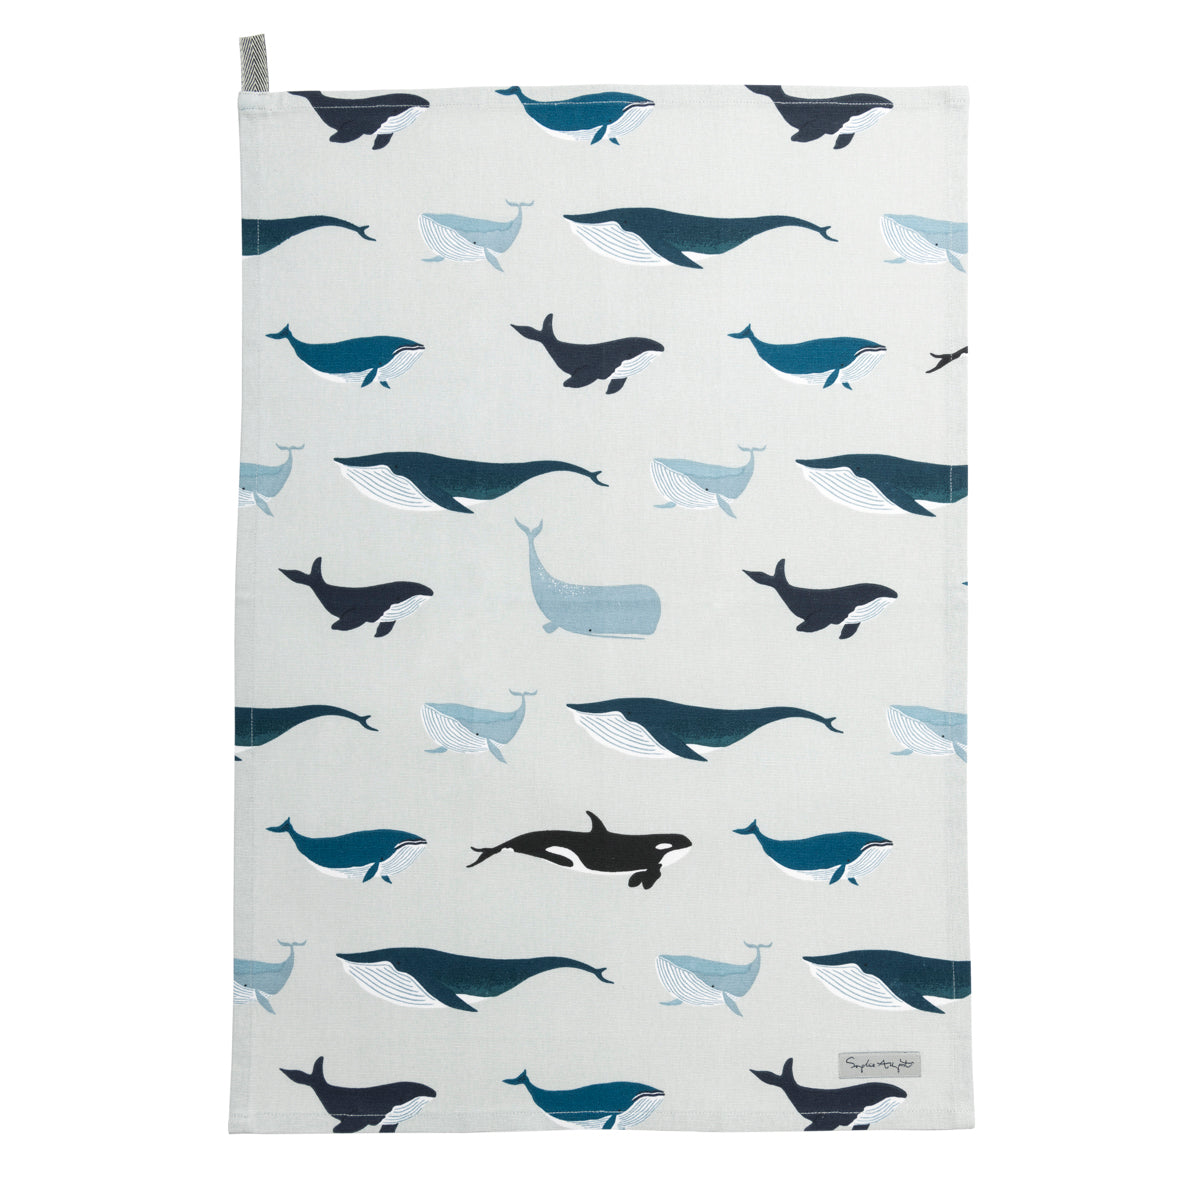 Whales Cotton Tea Towel by Sophie Allport